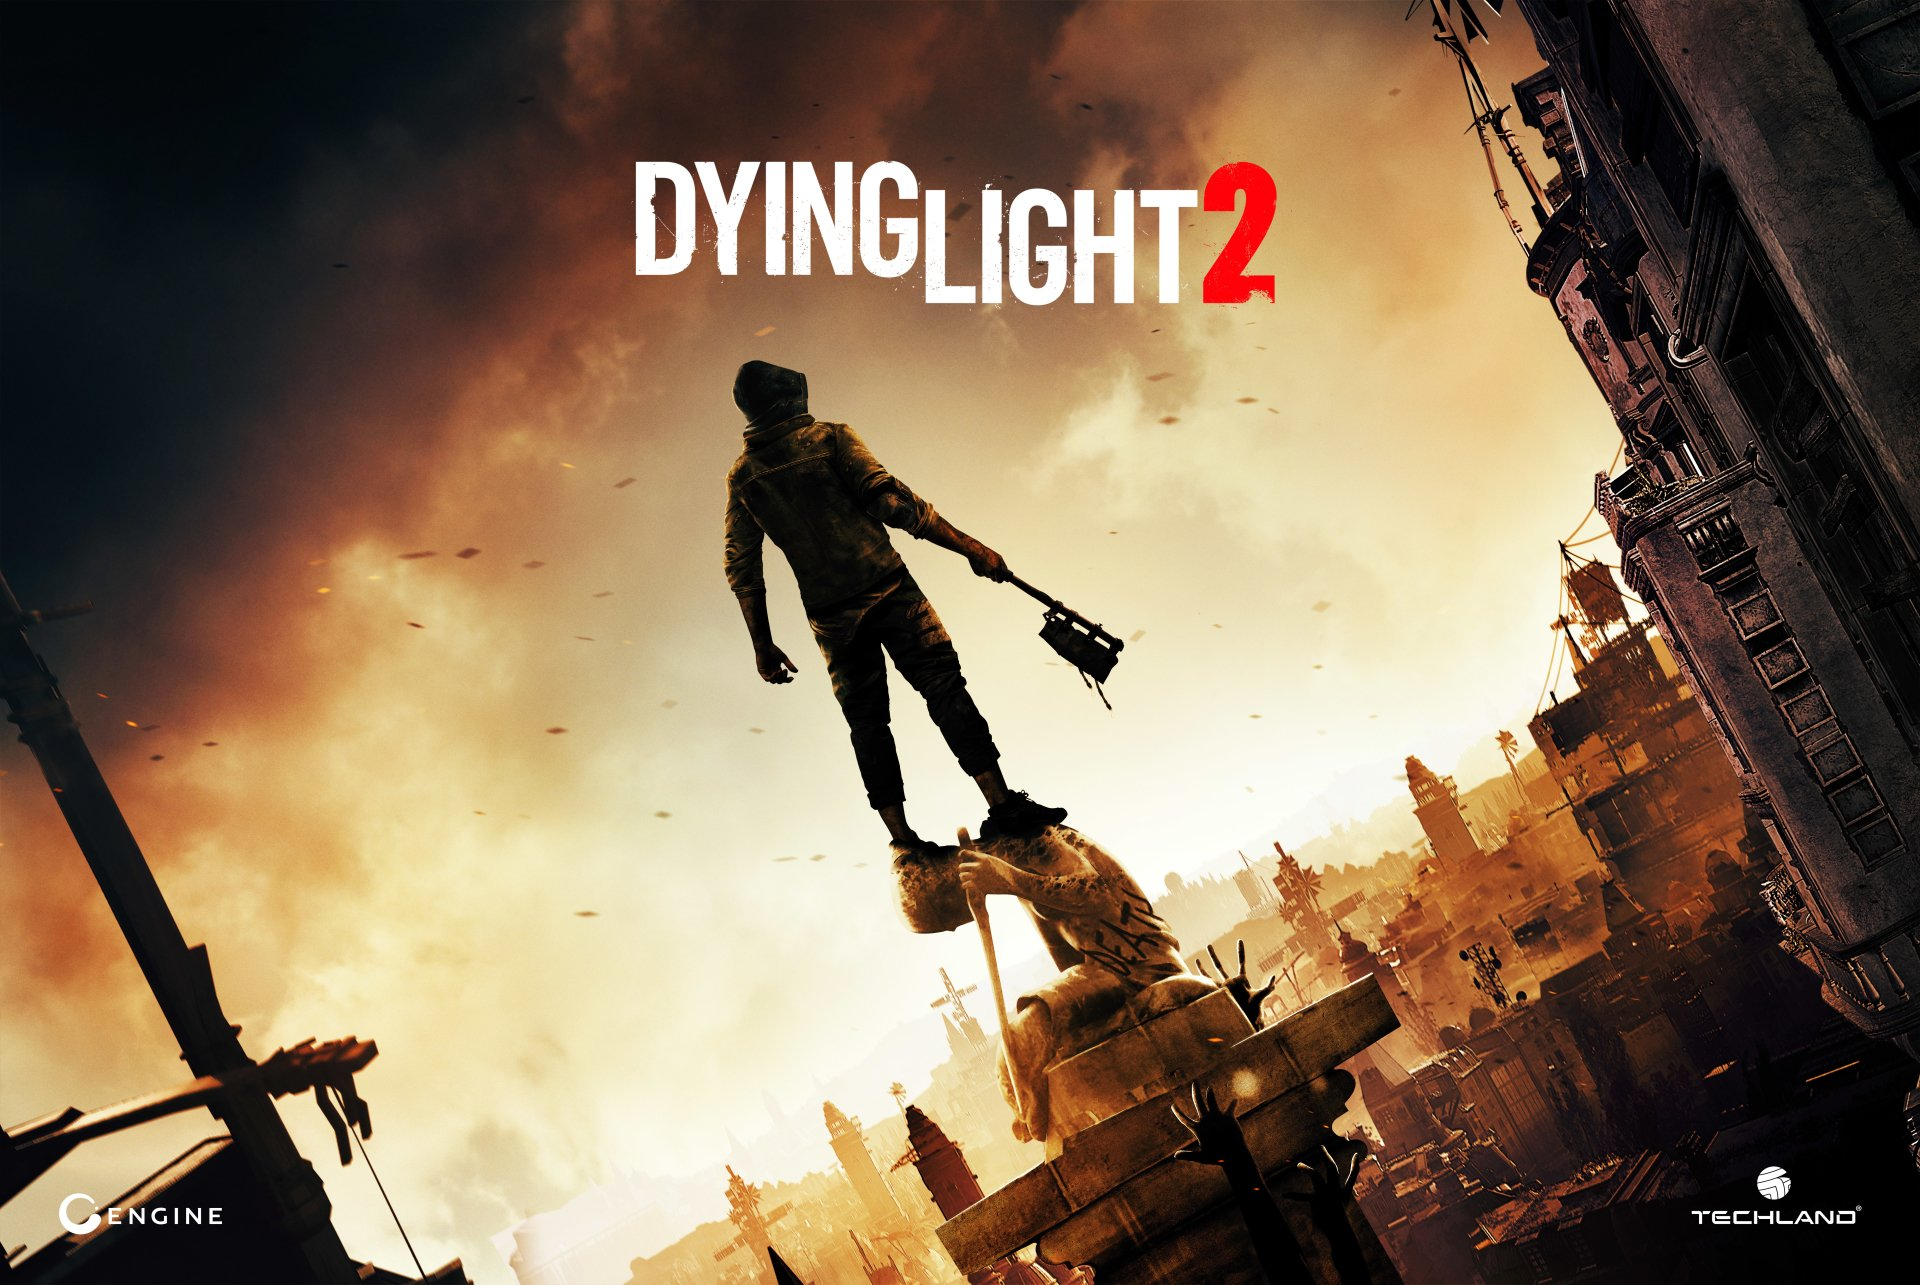 19 Dying Light 2 Hd Wallpapers Background Images Wallpaper Abyss